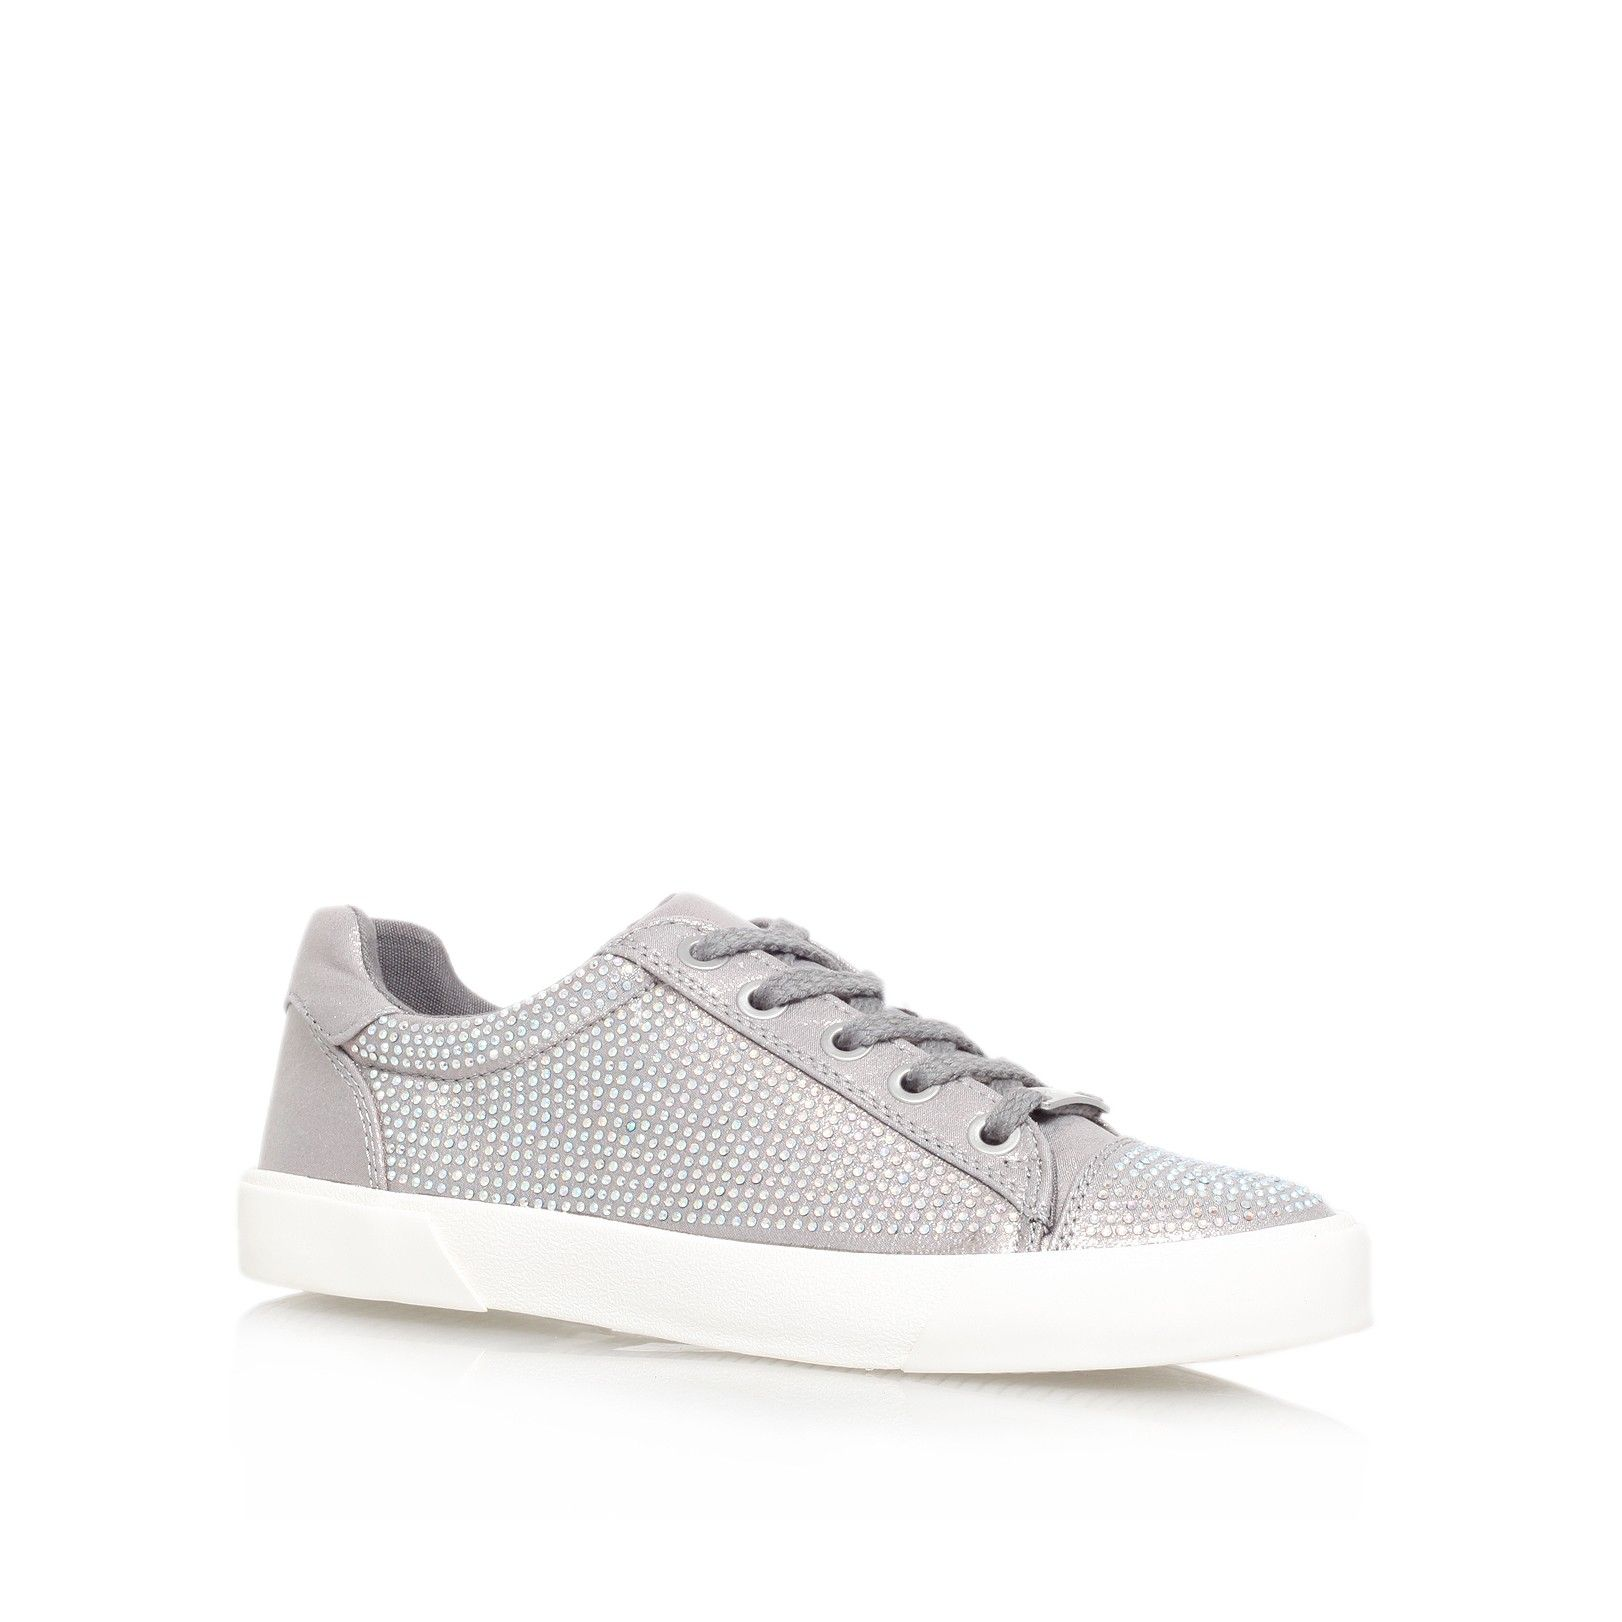 lock silver flat low top trainers from Carvela Kurt Geiger